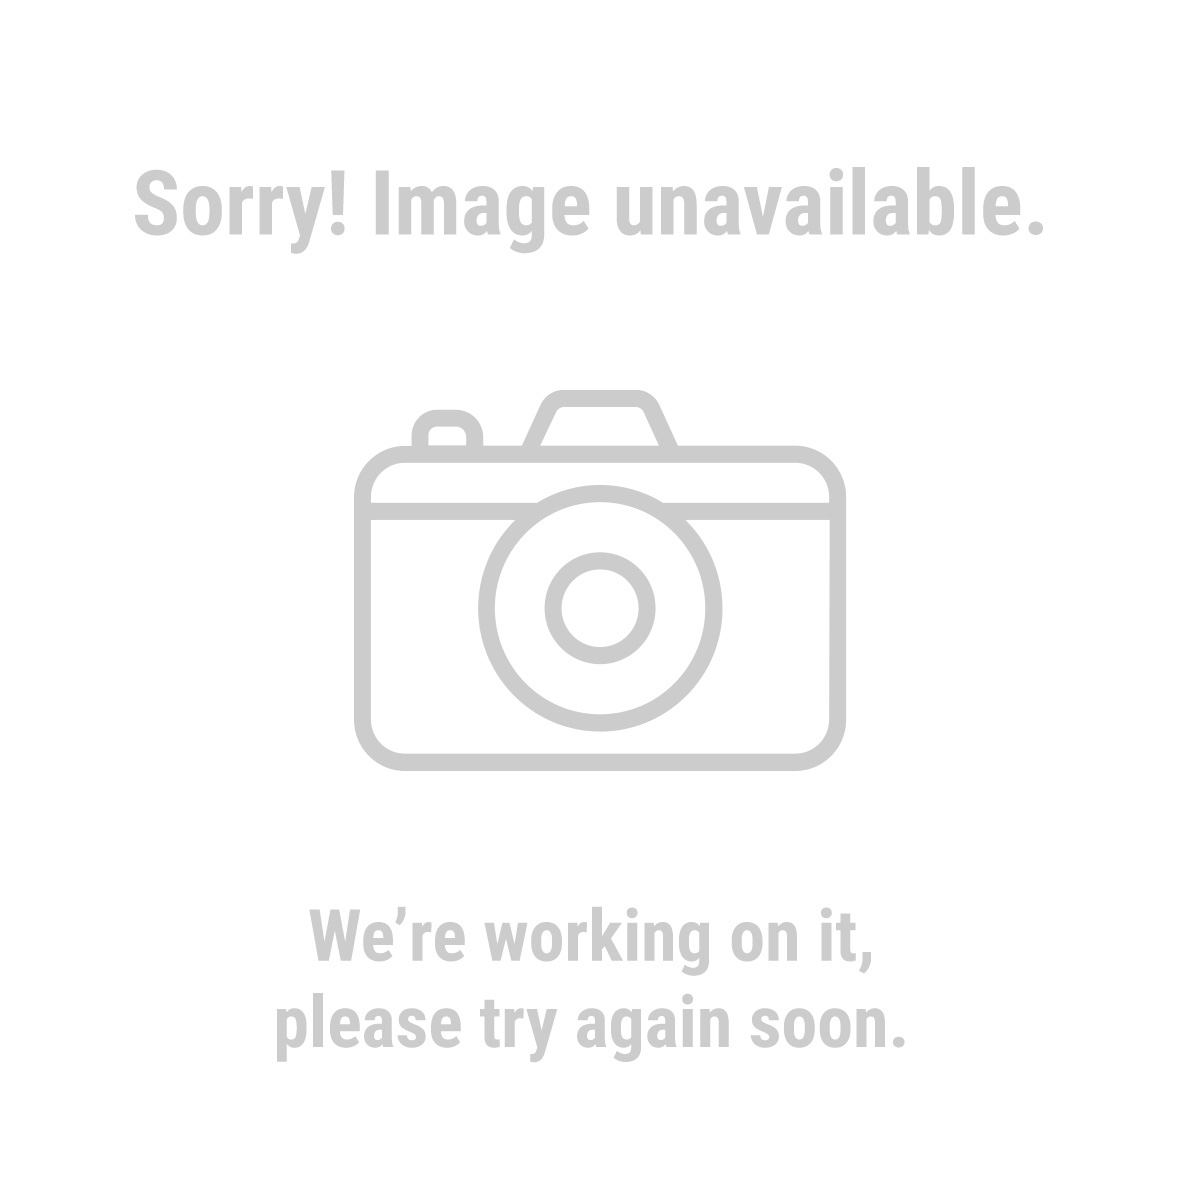 hight resolution of badlands 2000 lb winch wiring simple wiring diagram schema wireless winch remote wiring diagram badland winches 2000 lb winch wiring diagram